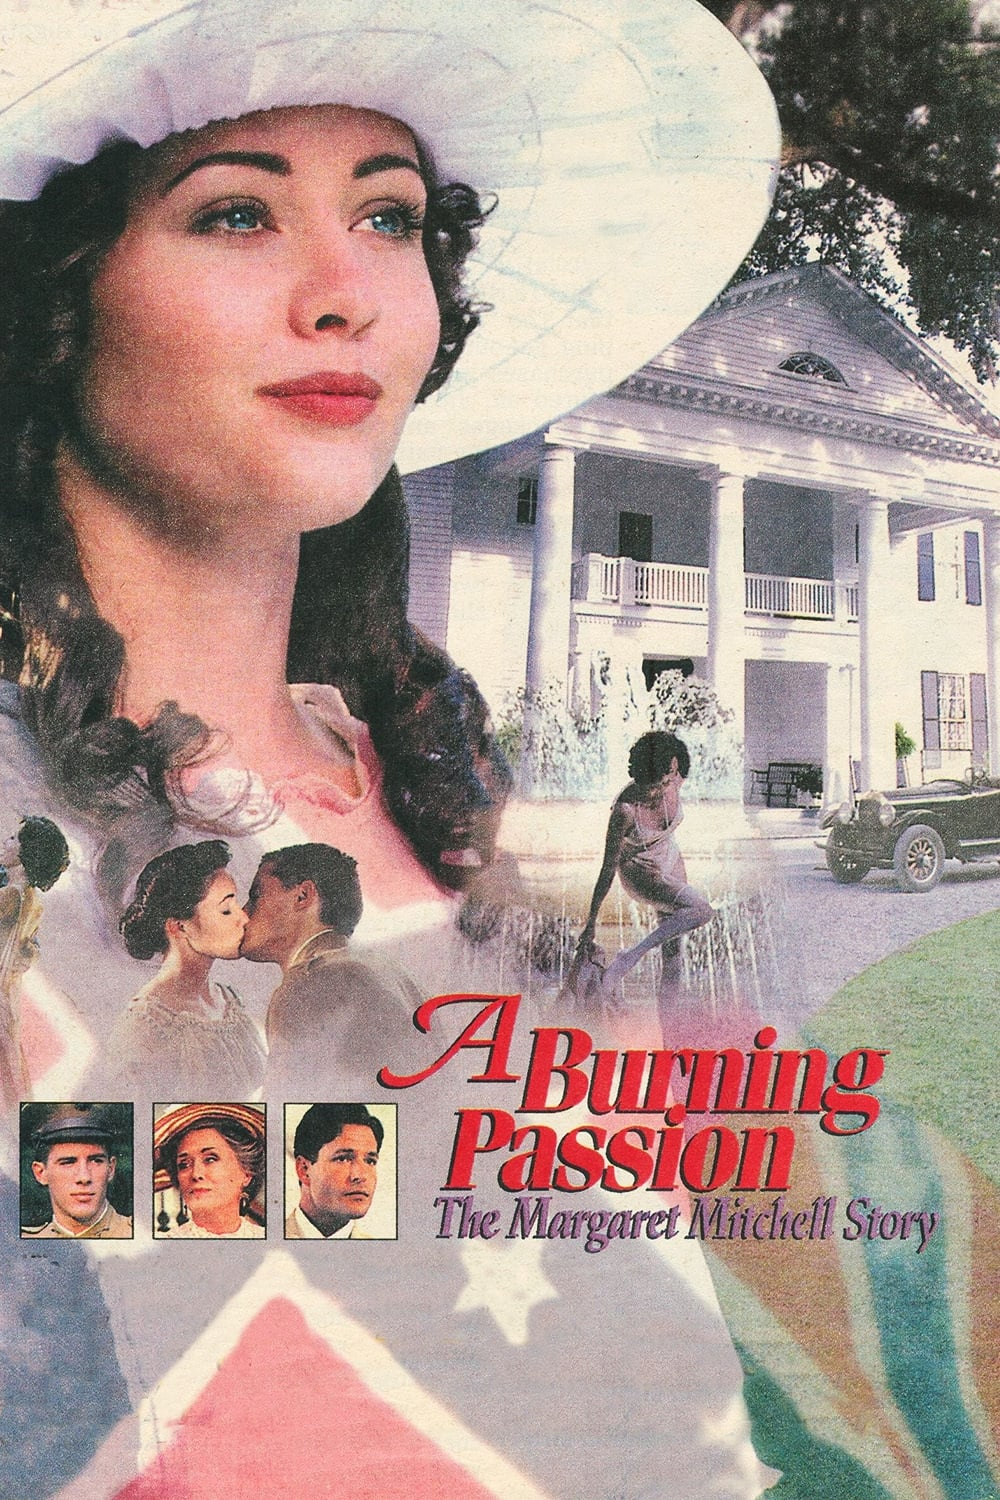 A Burning Passion: The Margaret Mitchell Story (1994)